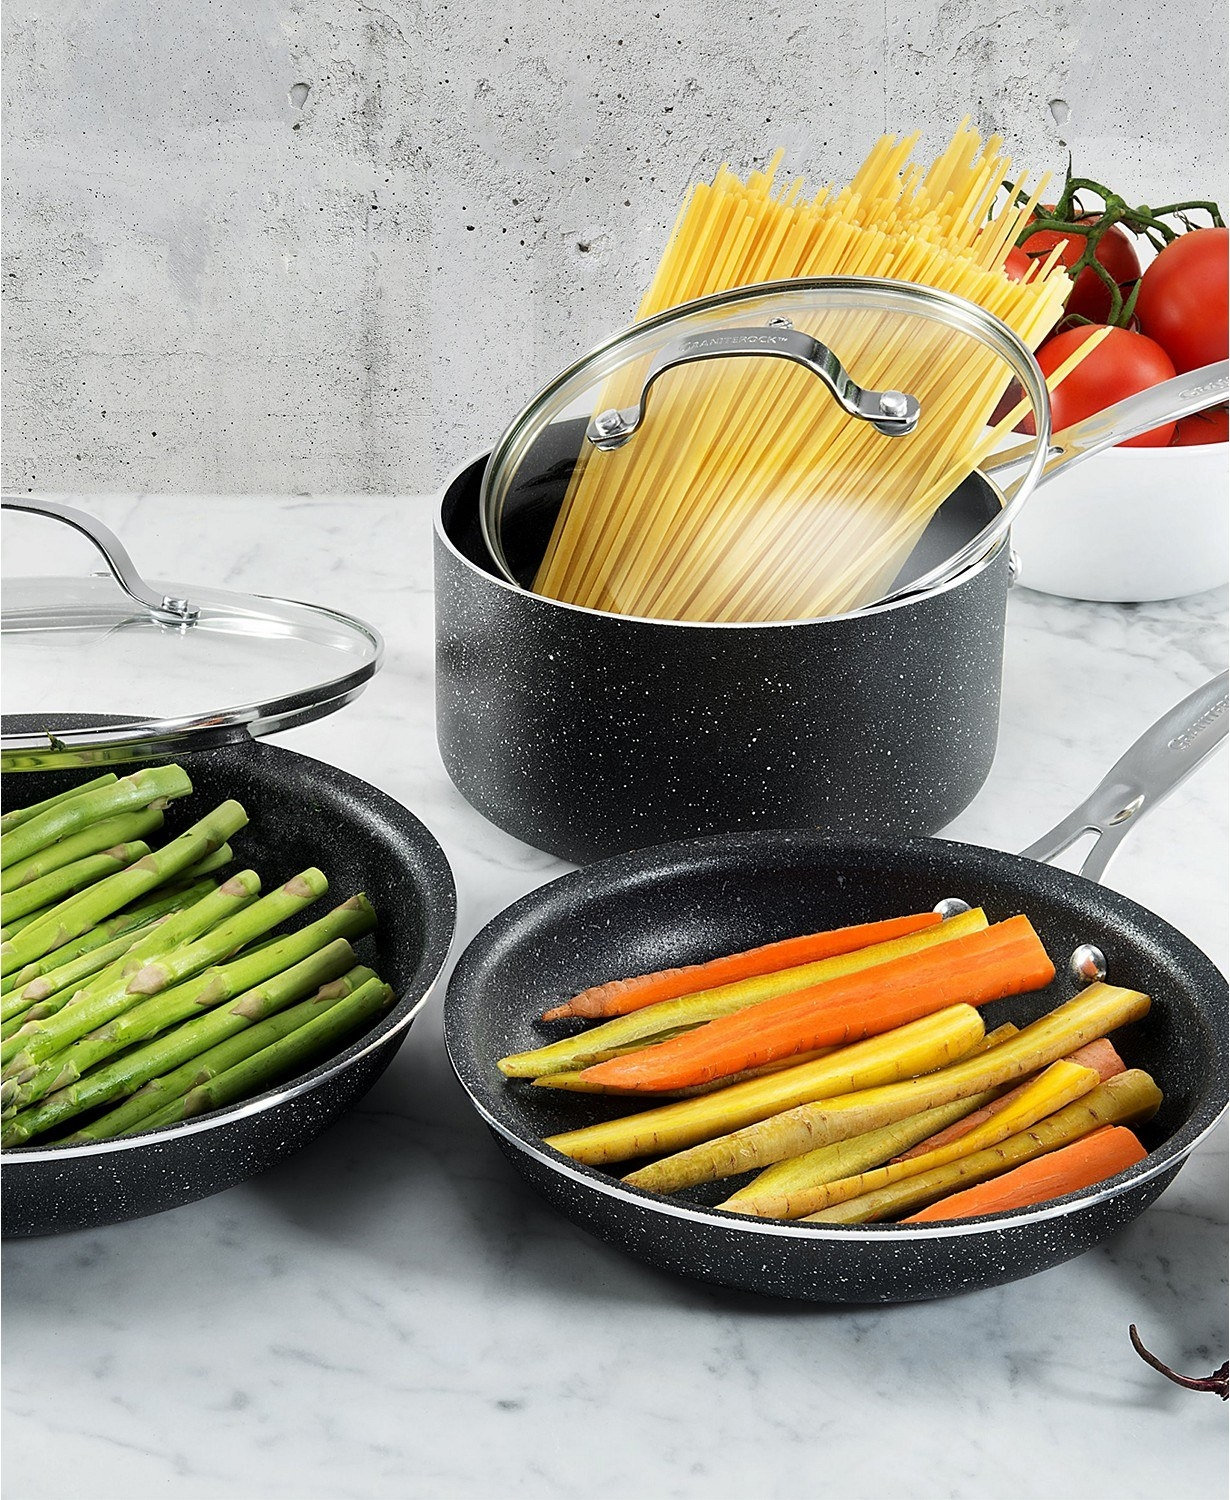 Two non-stick pans and one pot filled with veggies and pasta placed on countertop